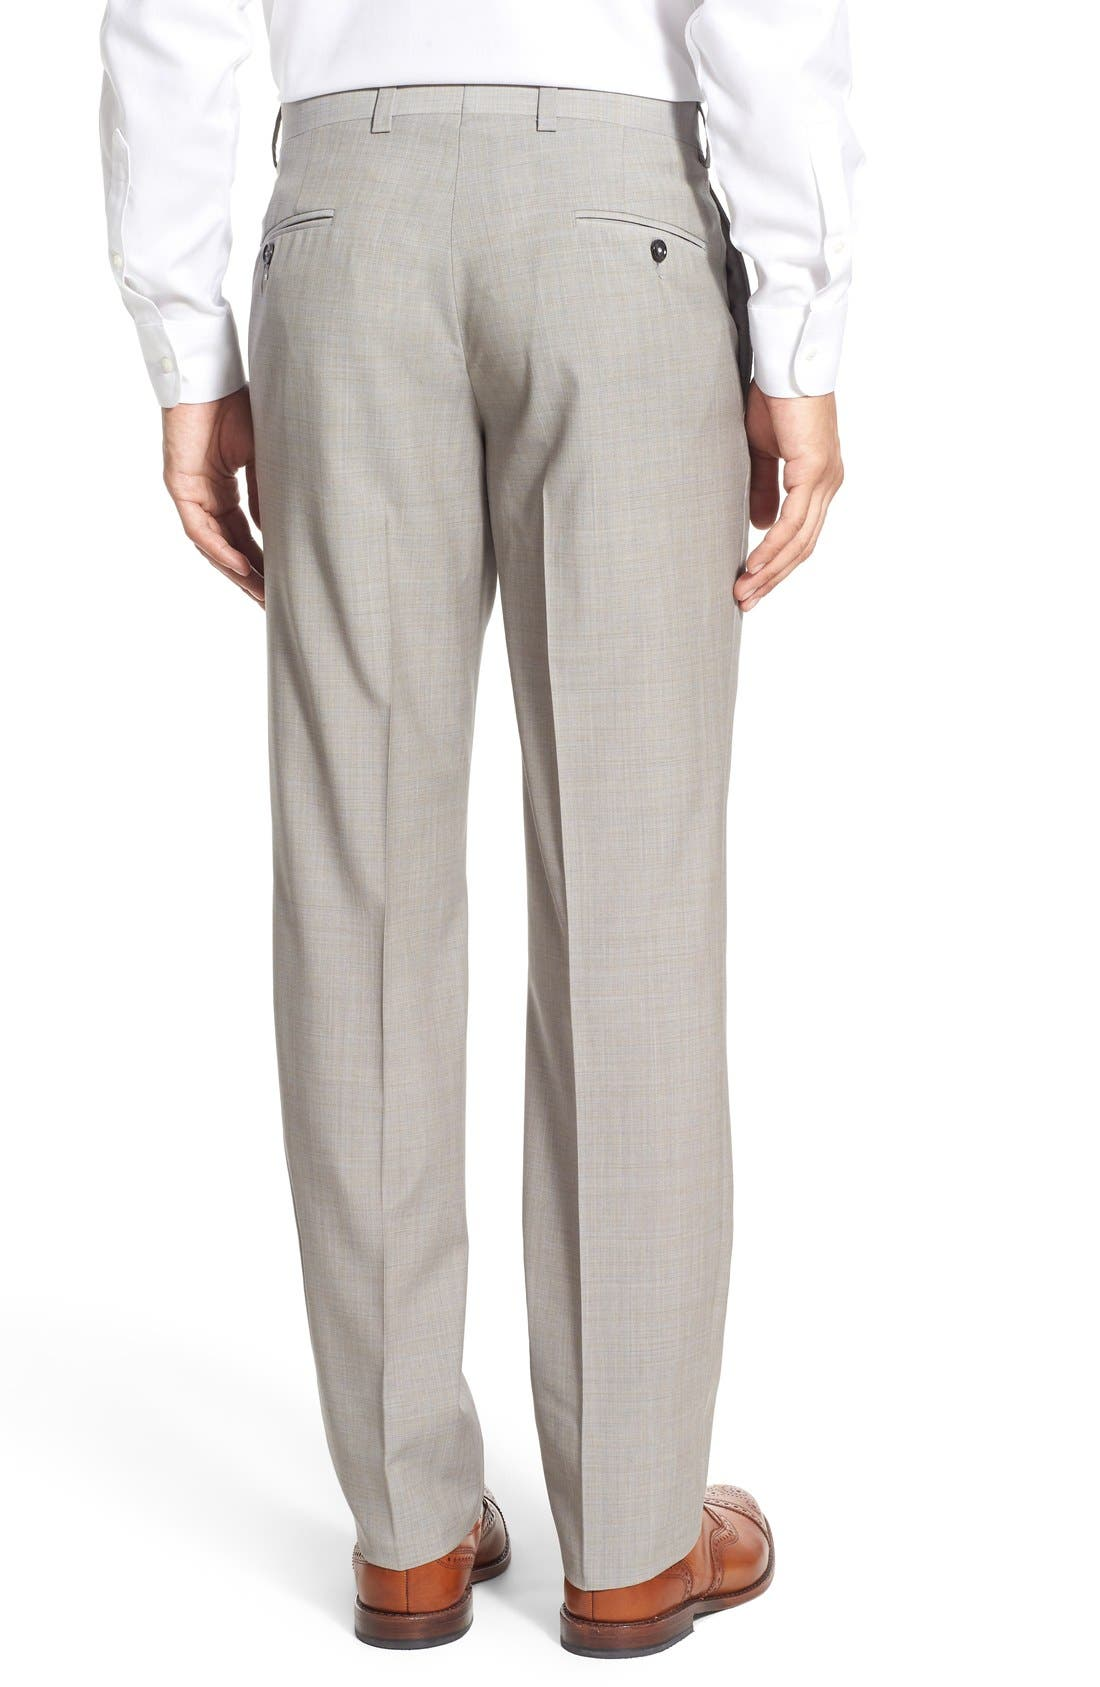 'Jefferson' Flat Front Solid Wool Trousers,                             Alternate thumbnail 2, color,                             270